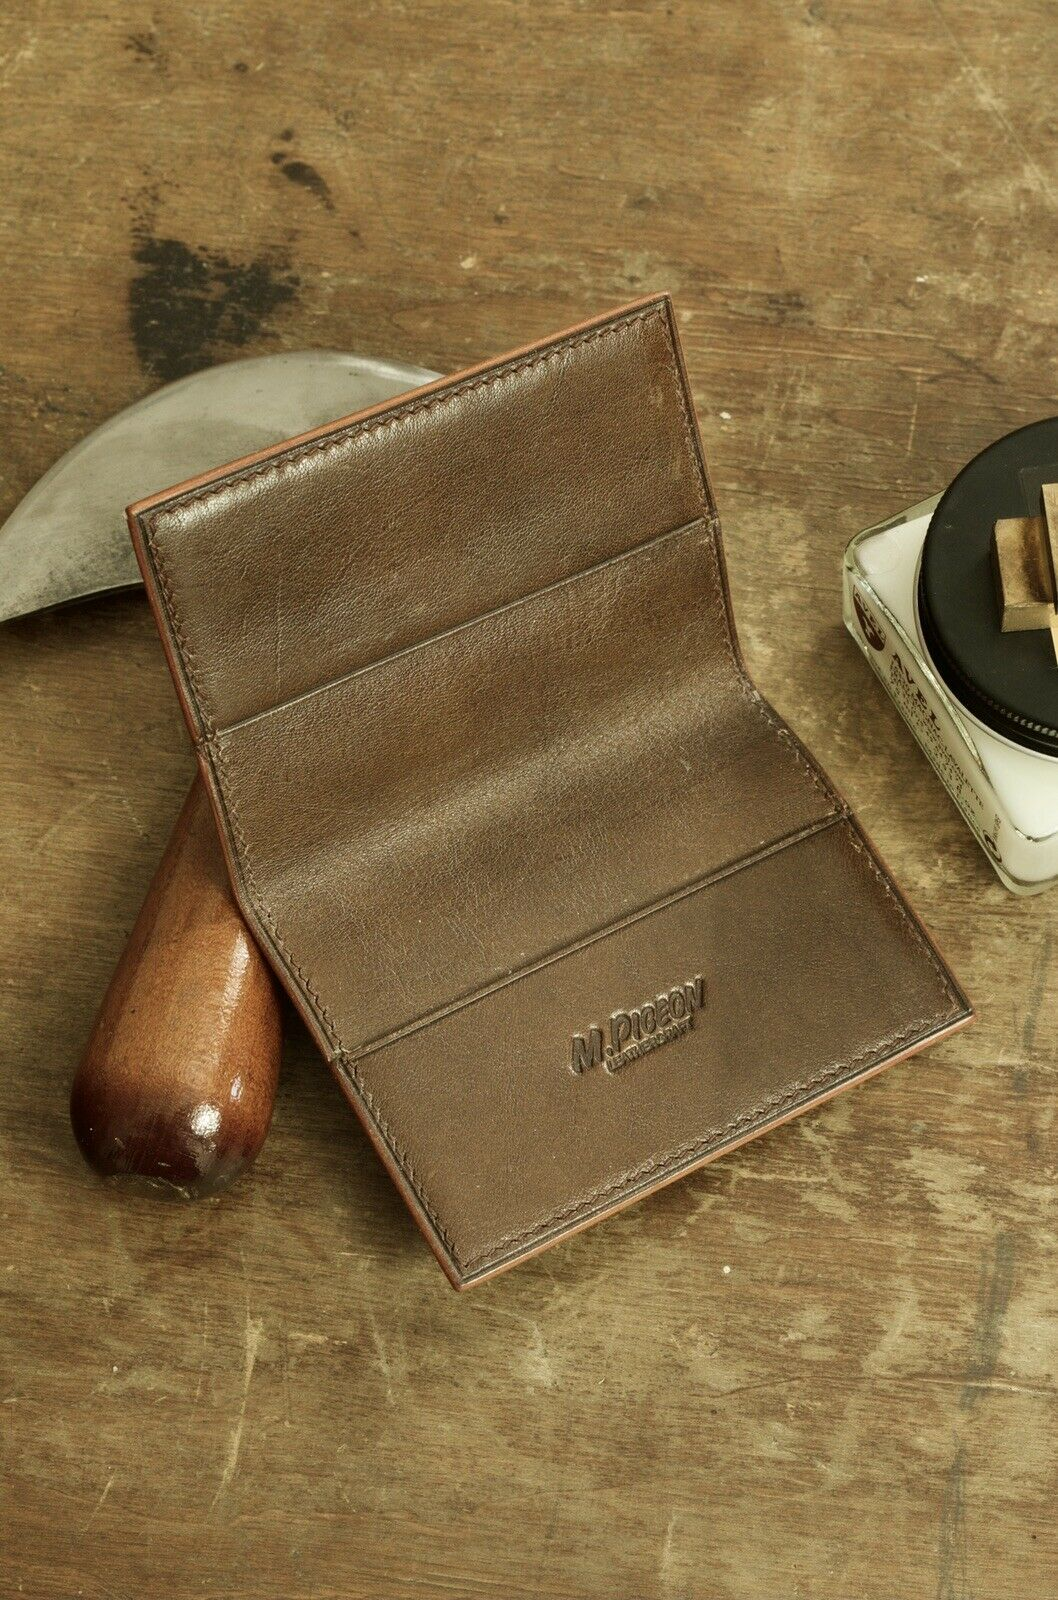 Mpigeon Handmade Leather Card Wallet